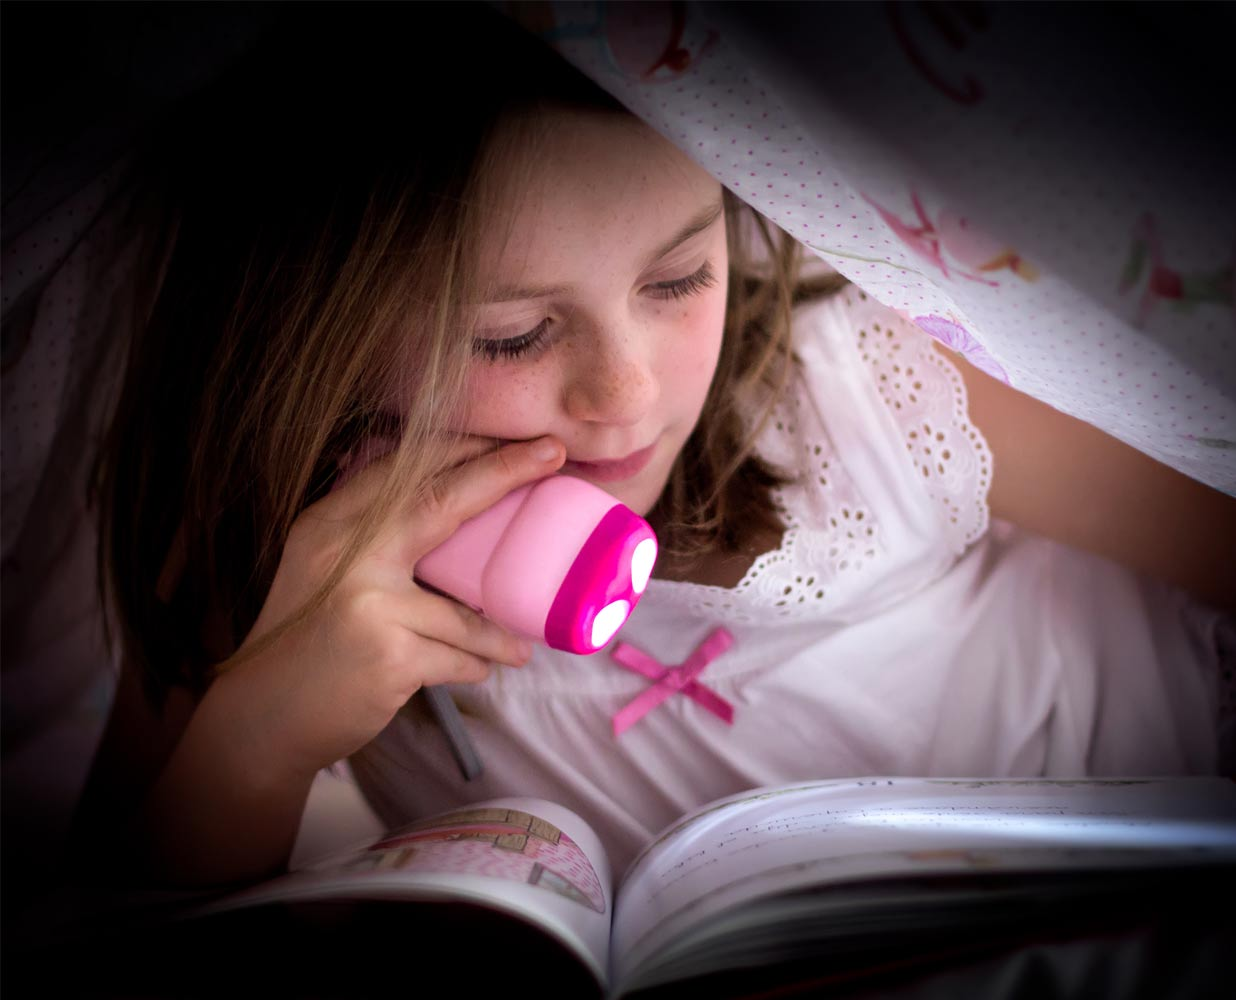 Is Reading in Dim Light Bad for your Eyes?